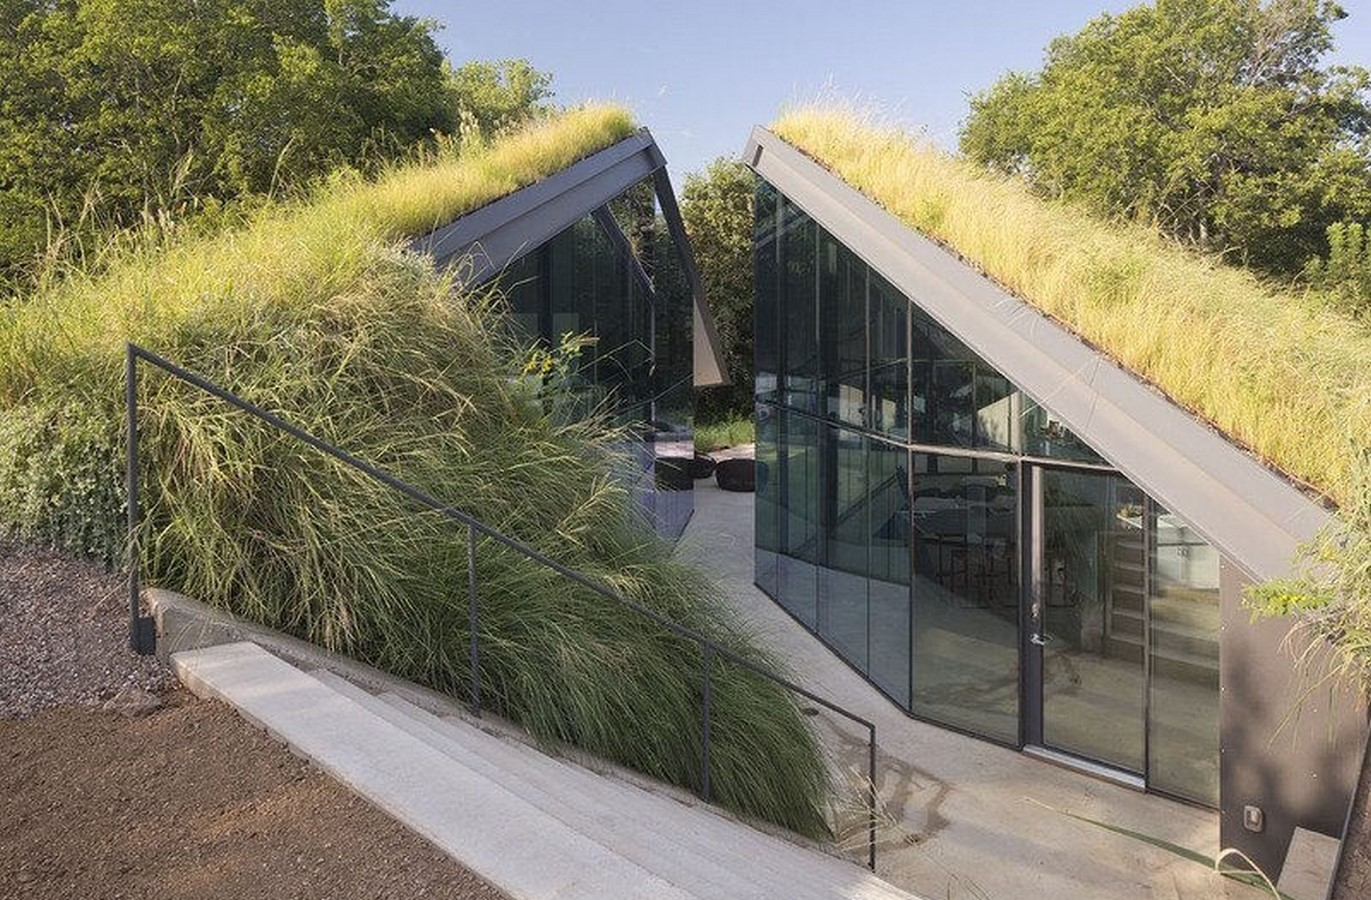 20 Futuristic homes ideas to invest in - Sheet1